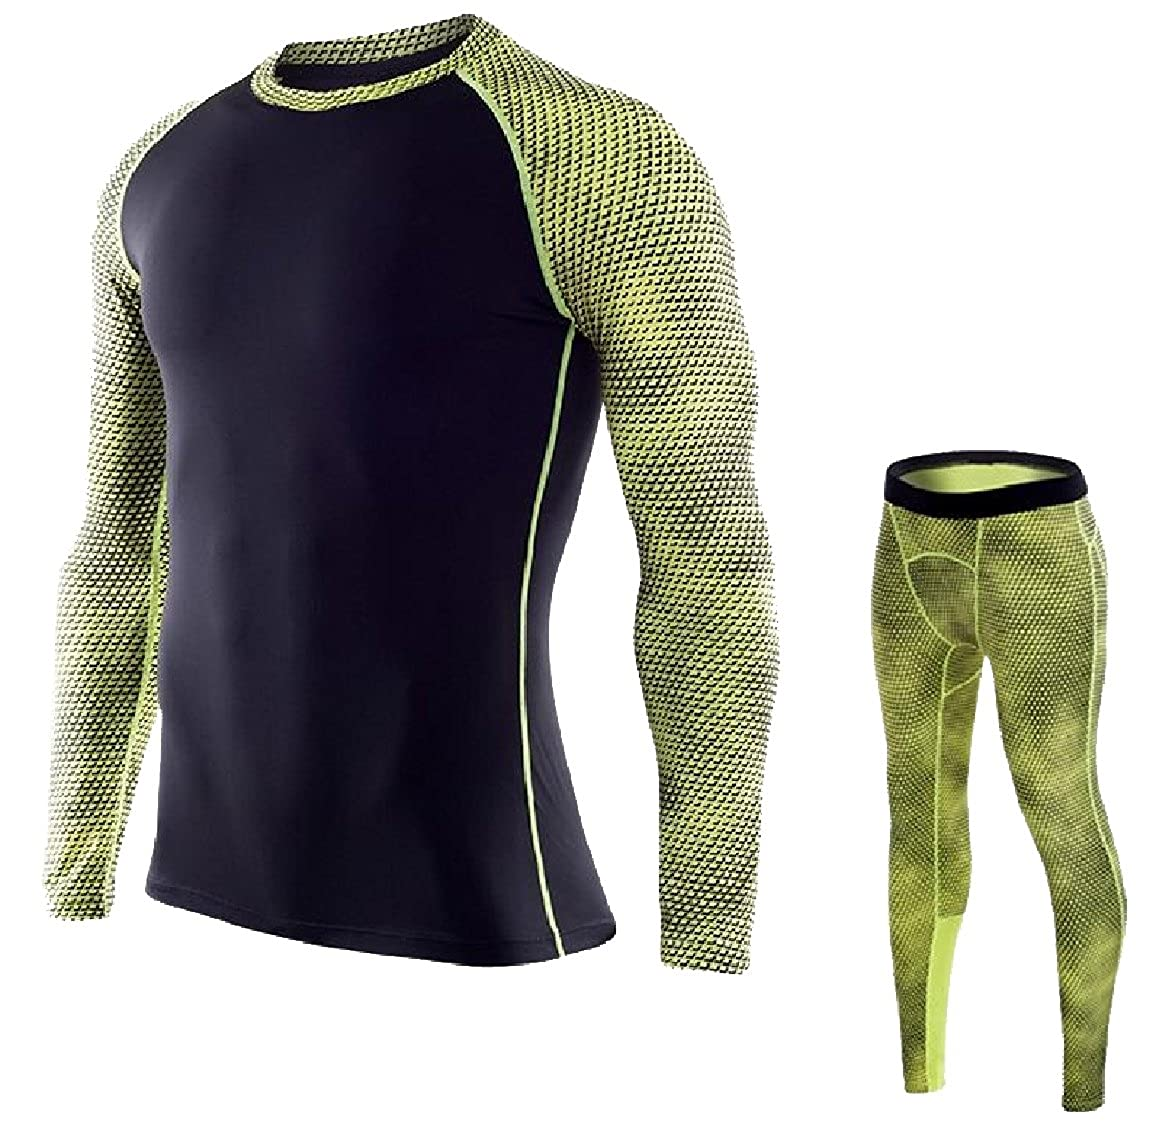 Sexybaby Men Classic Printing Pattern Quick Dry Thermal Underwear Set